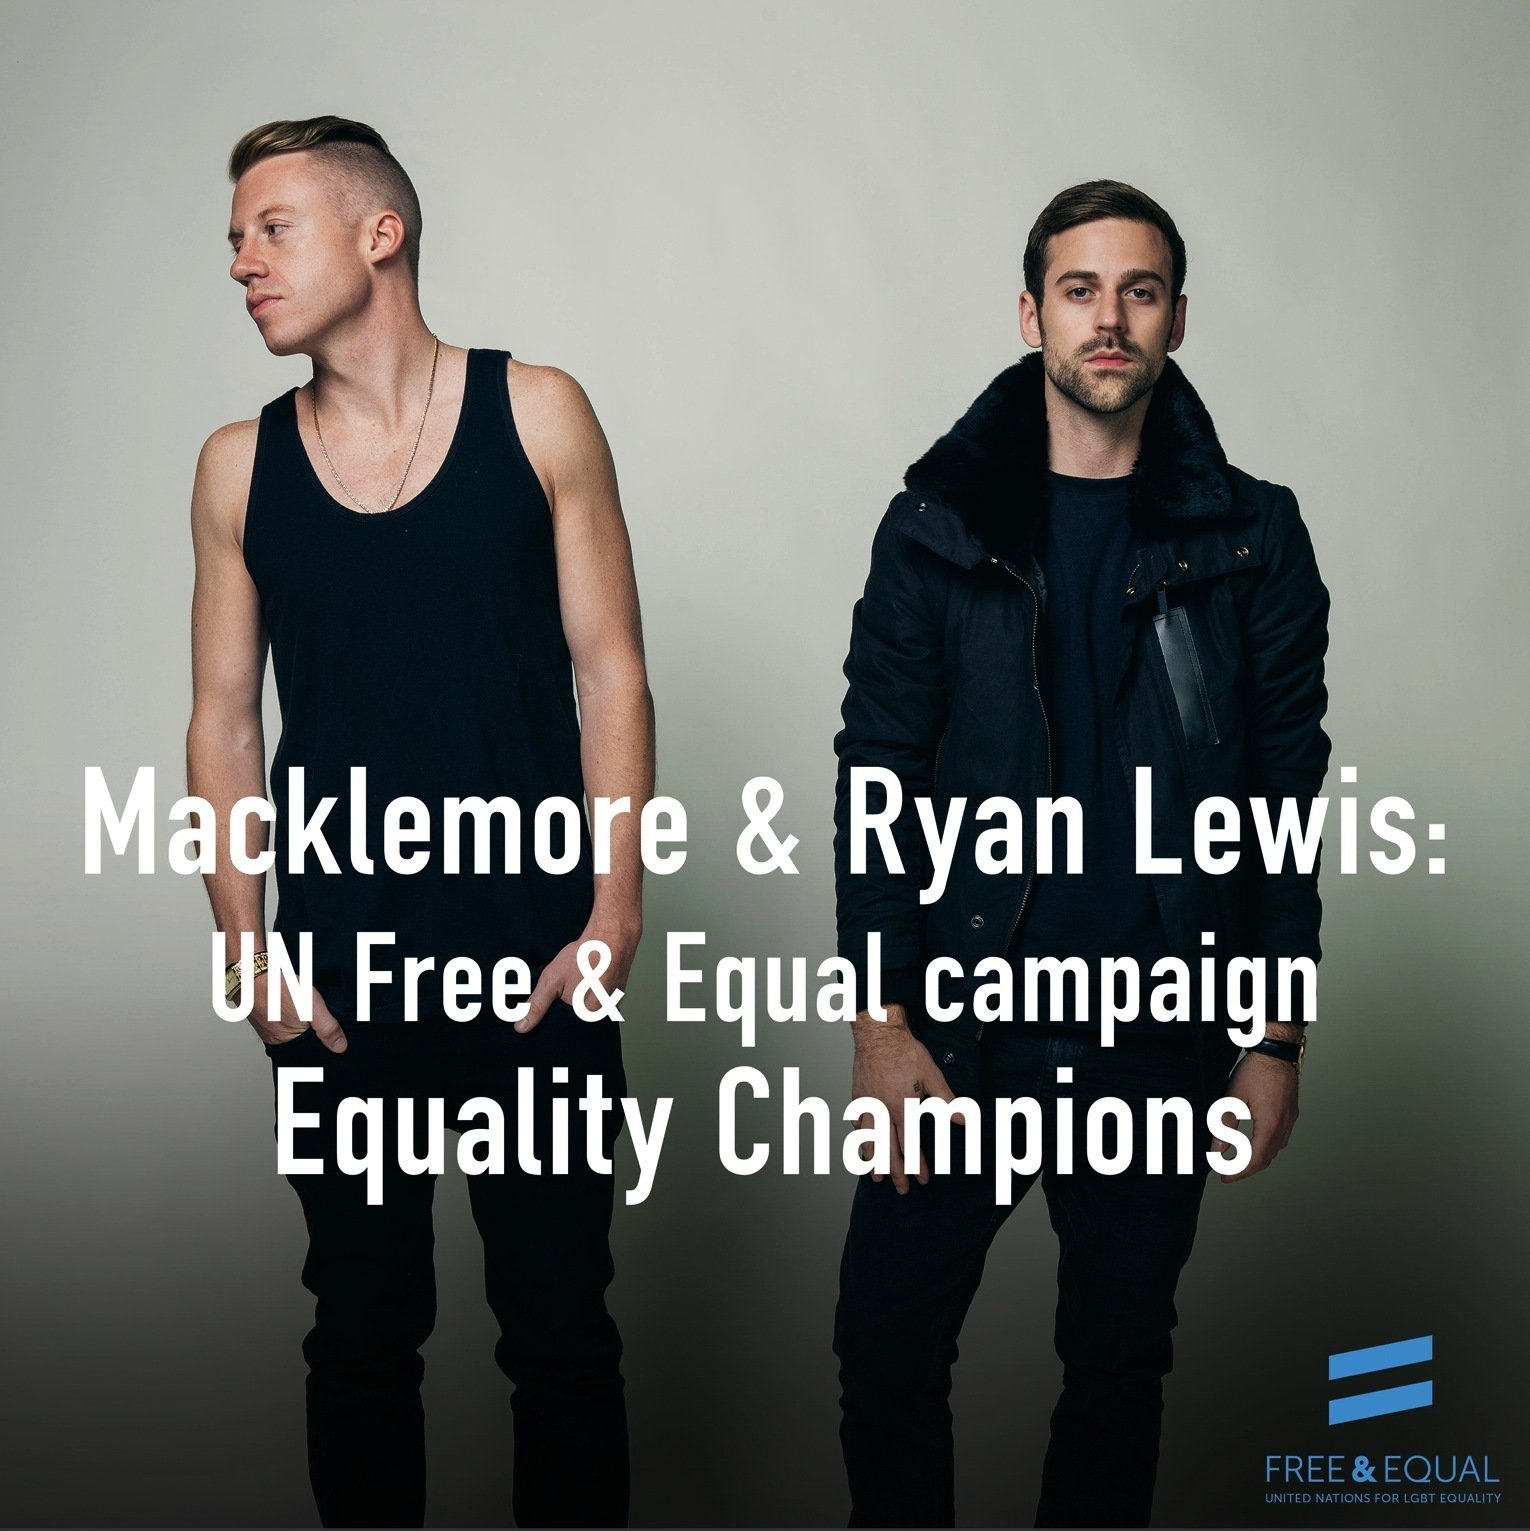 macklemore and the other guy